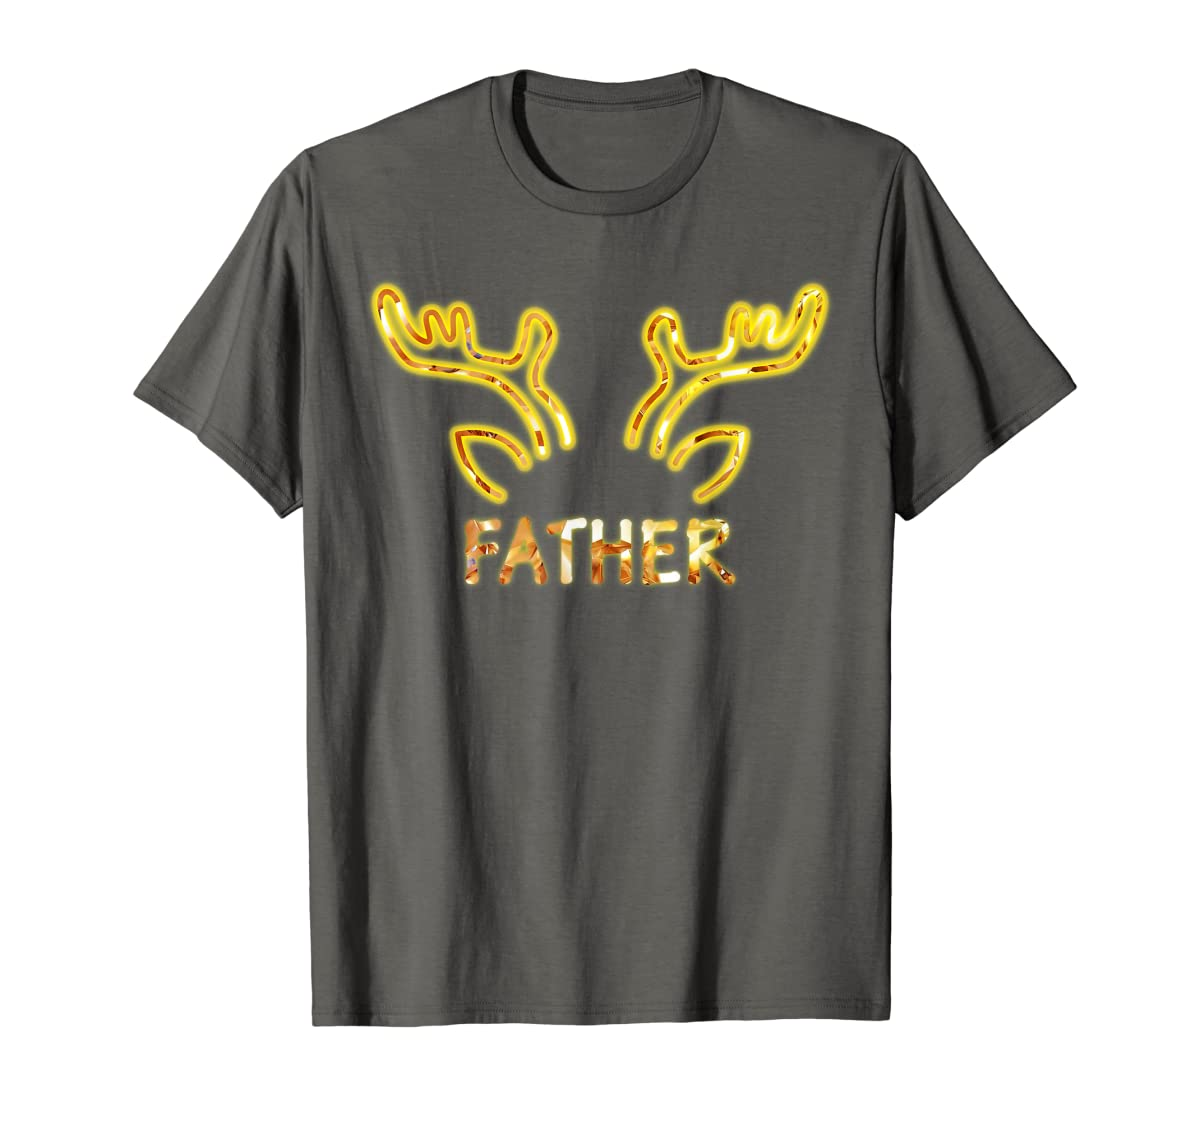 Father Reindeer Matching Family Christmas T-Shirt T-Shirt-Men's T-Shirt-Dark Heather